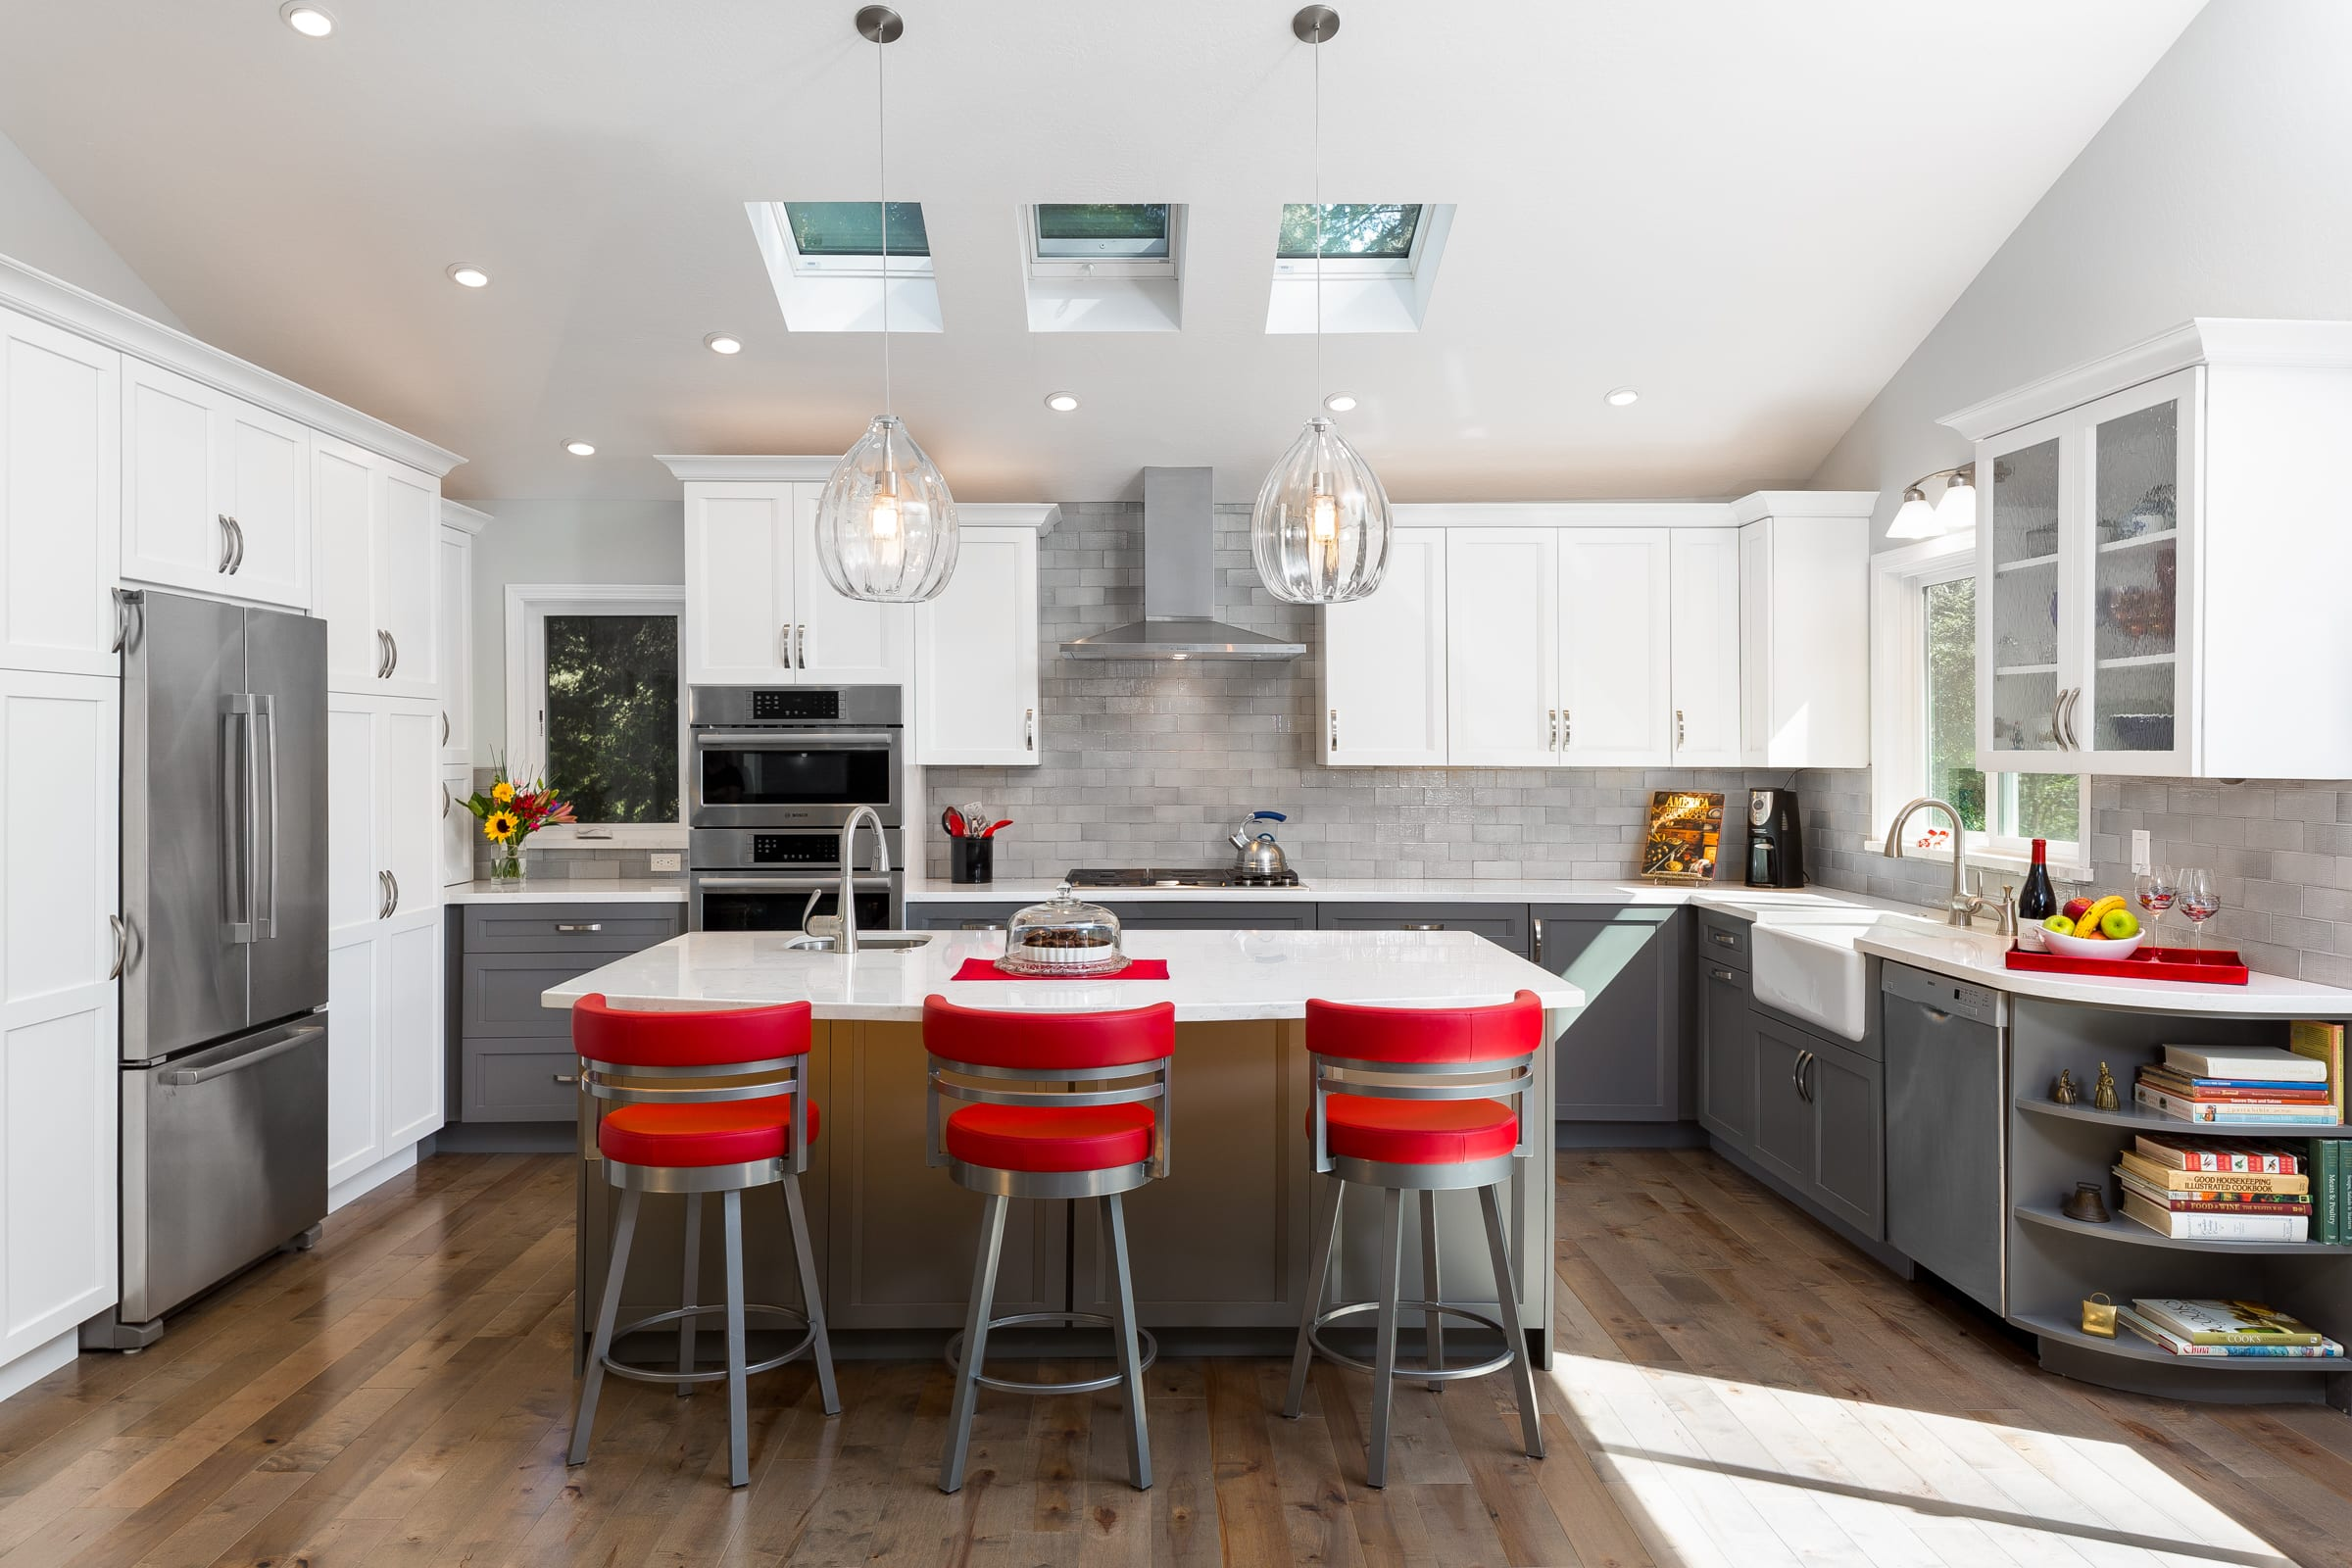 After kitchen remodel with three skylights, red barstools, and white cabinetry